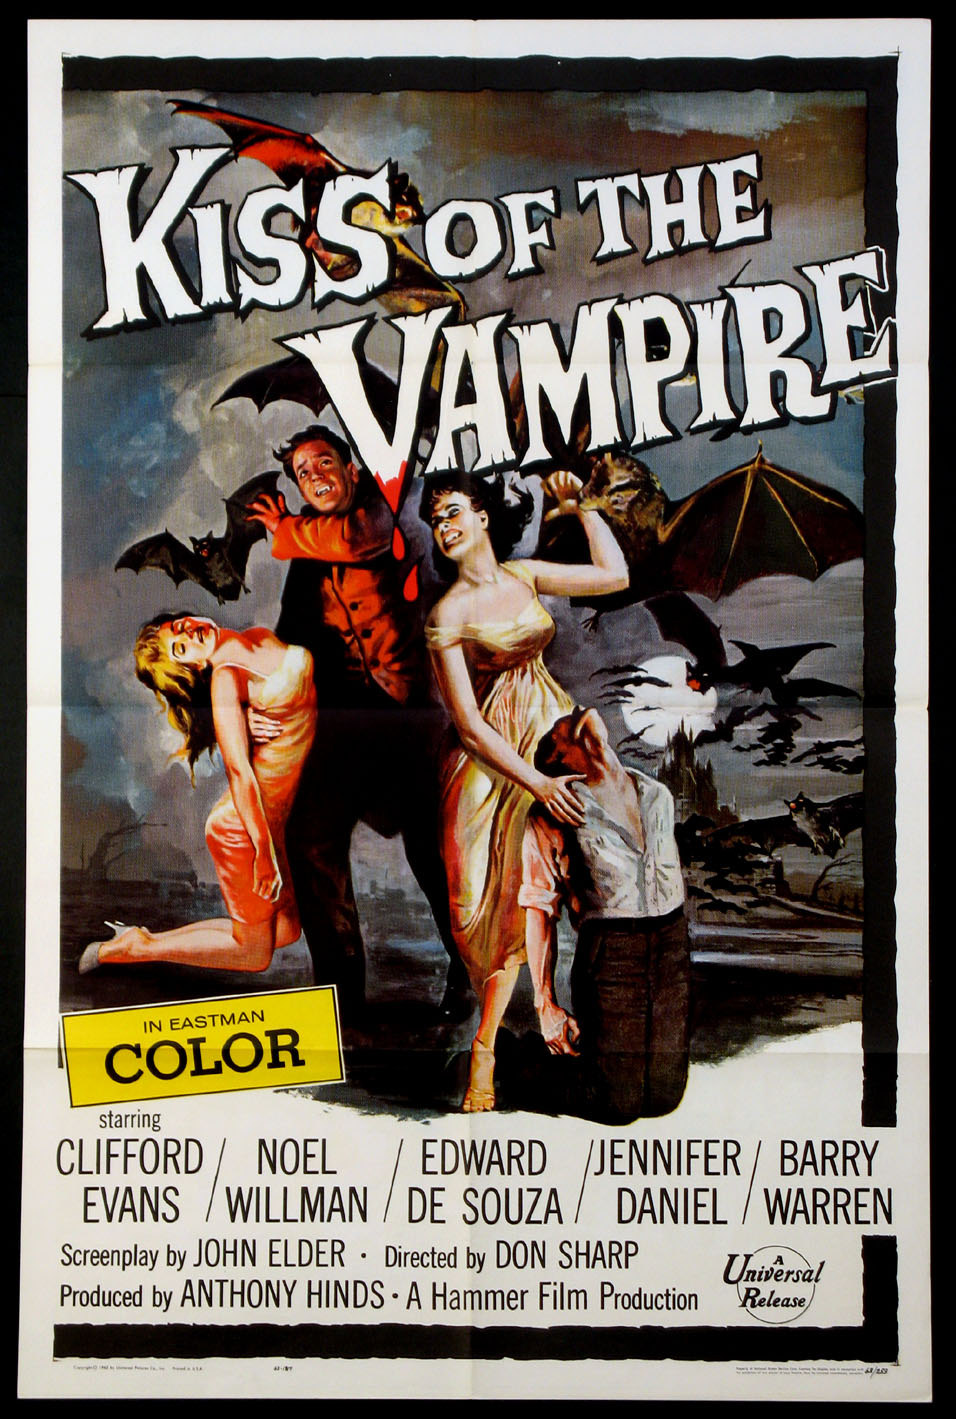 KISS OF THE VAMPIRE @ FilmPosters.com